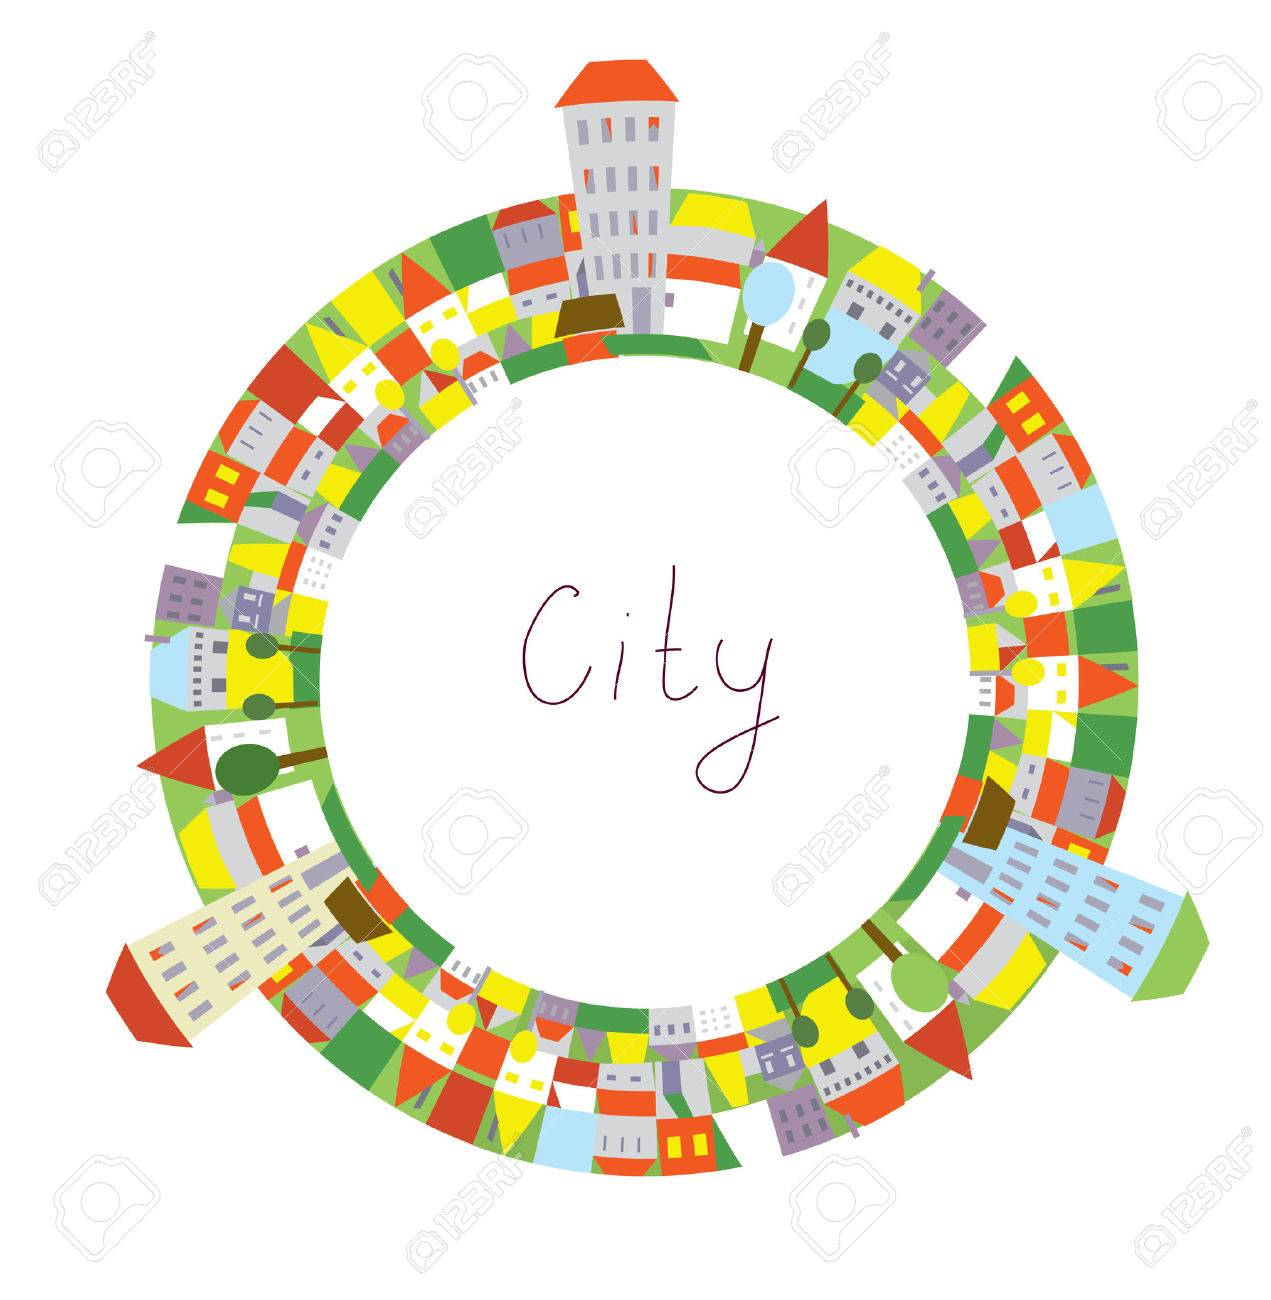 cartoon of city circle frame with funny houses for kids royalty